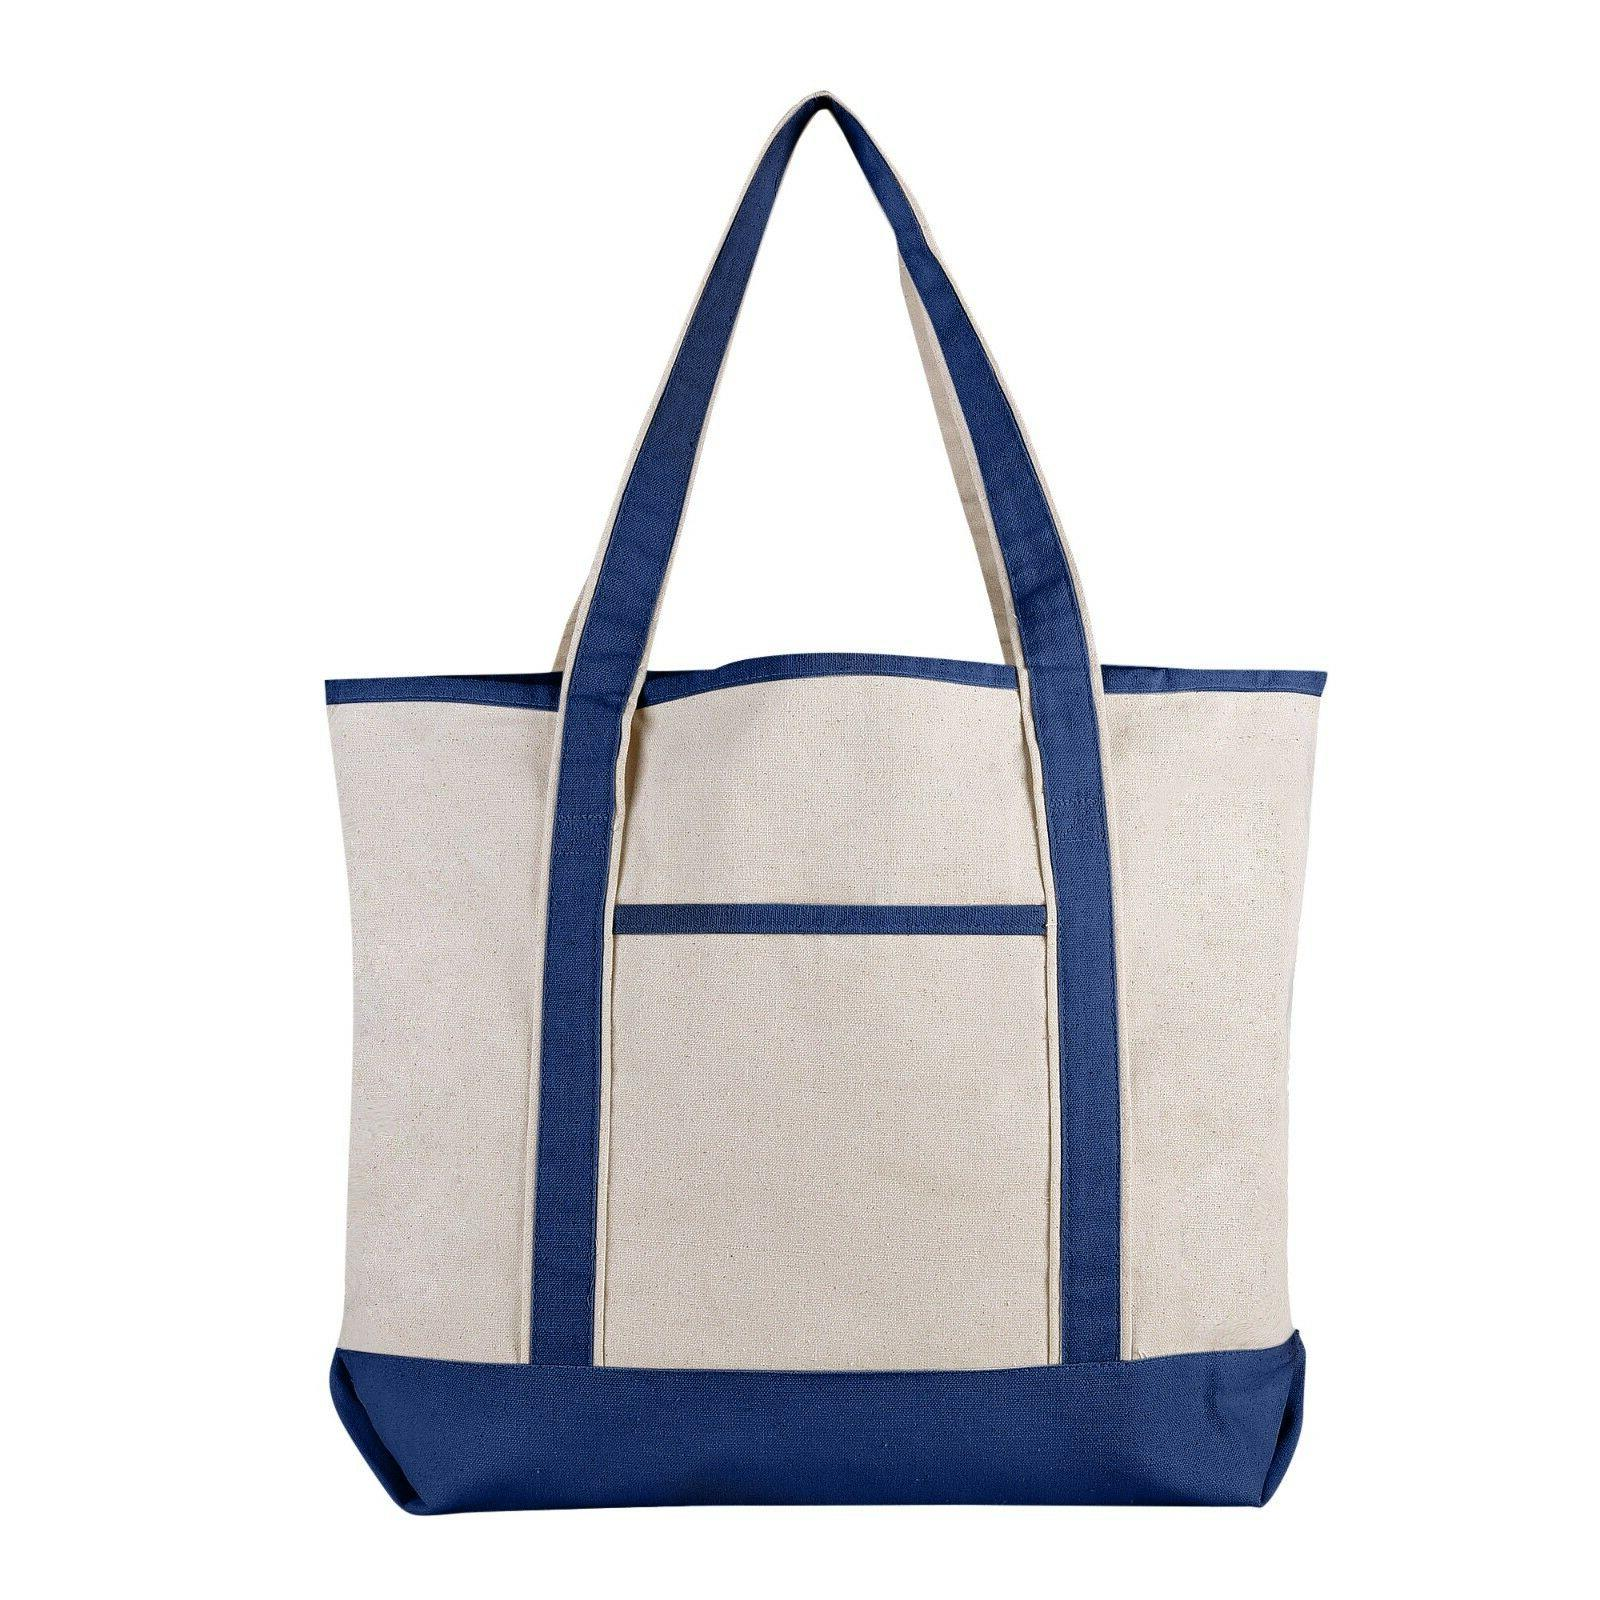 Extra Large Canvas Tote for Work